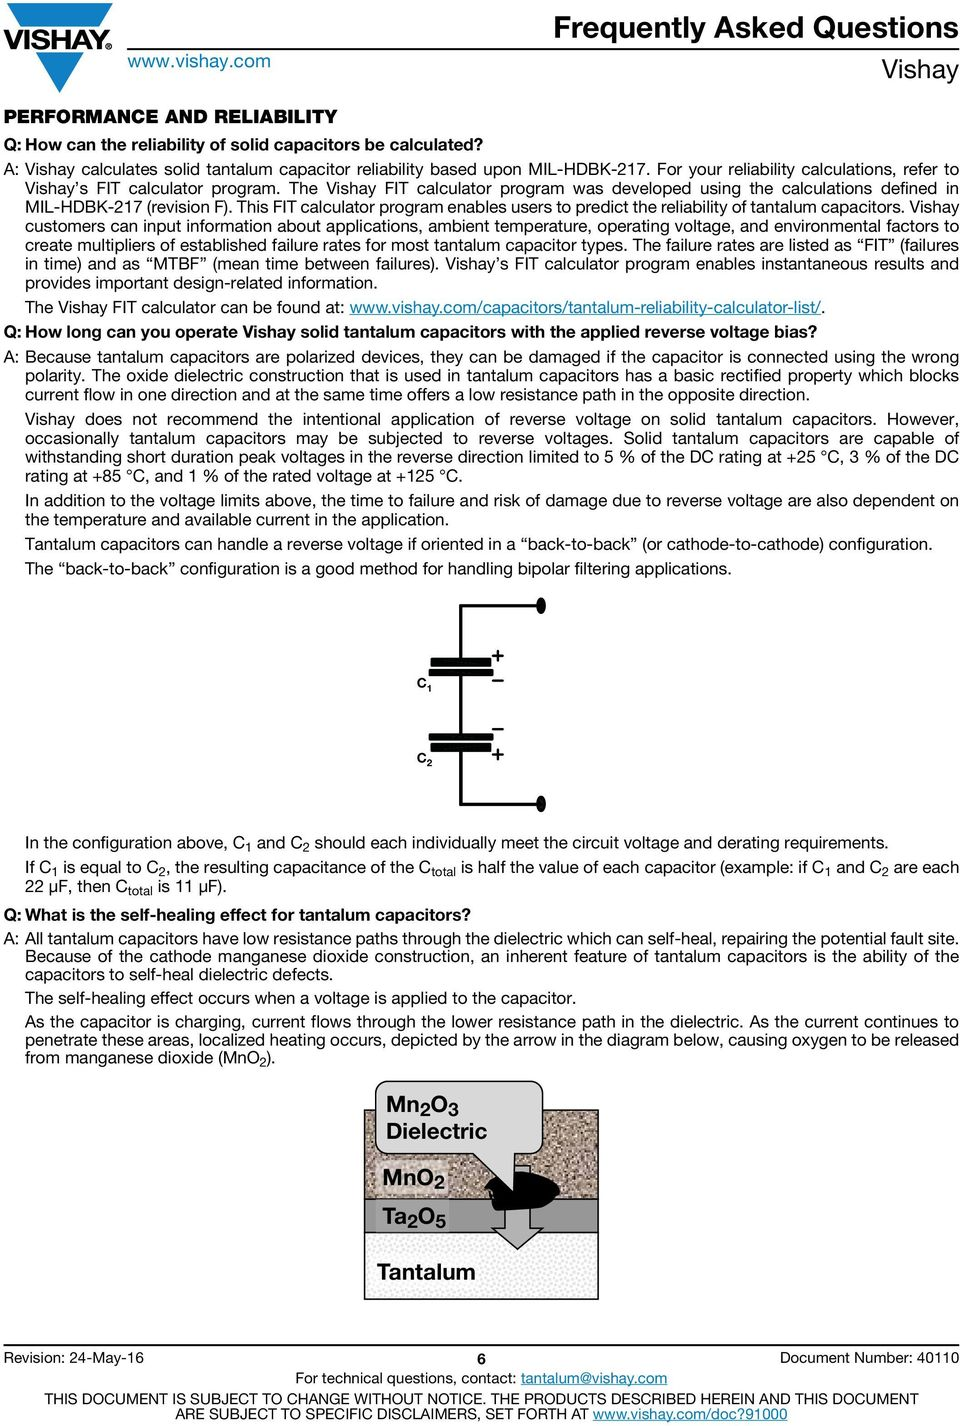 Solid Tantalum Capacitors Frequently Asked Questions Faqs Pdf Multiple Anode Capacitor This Fit Calculator Program Enables Users To Predict The Reliability Of